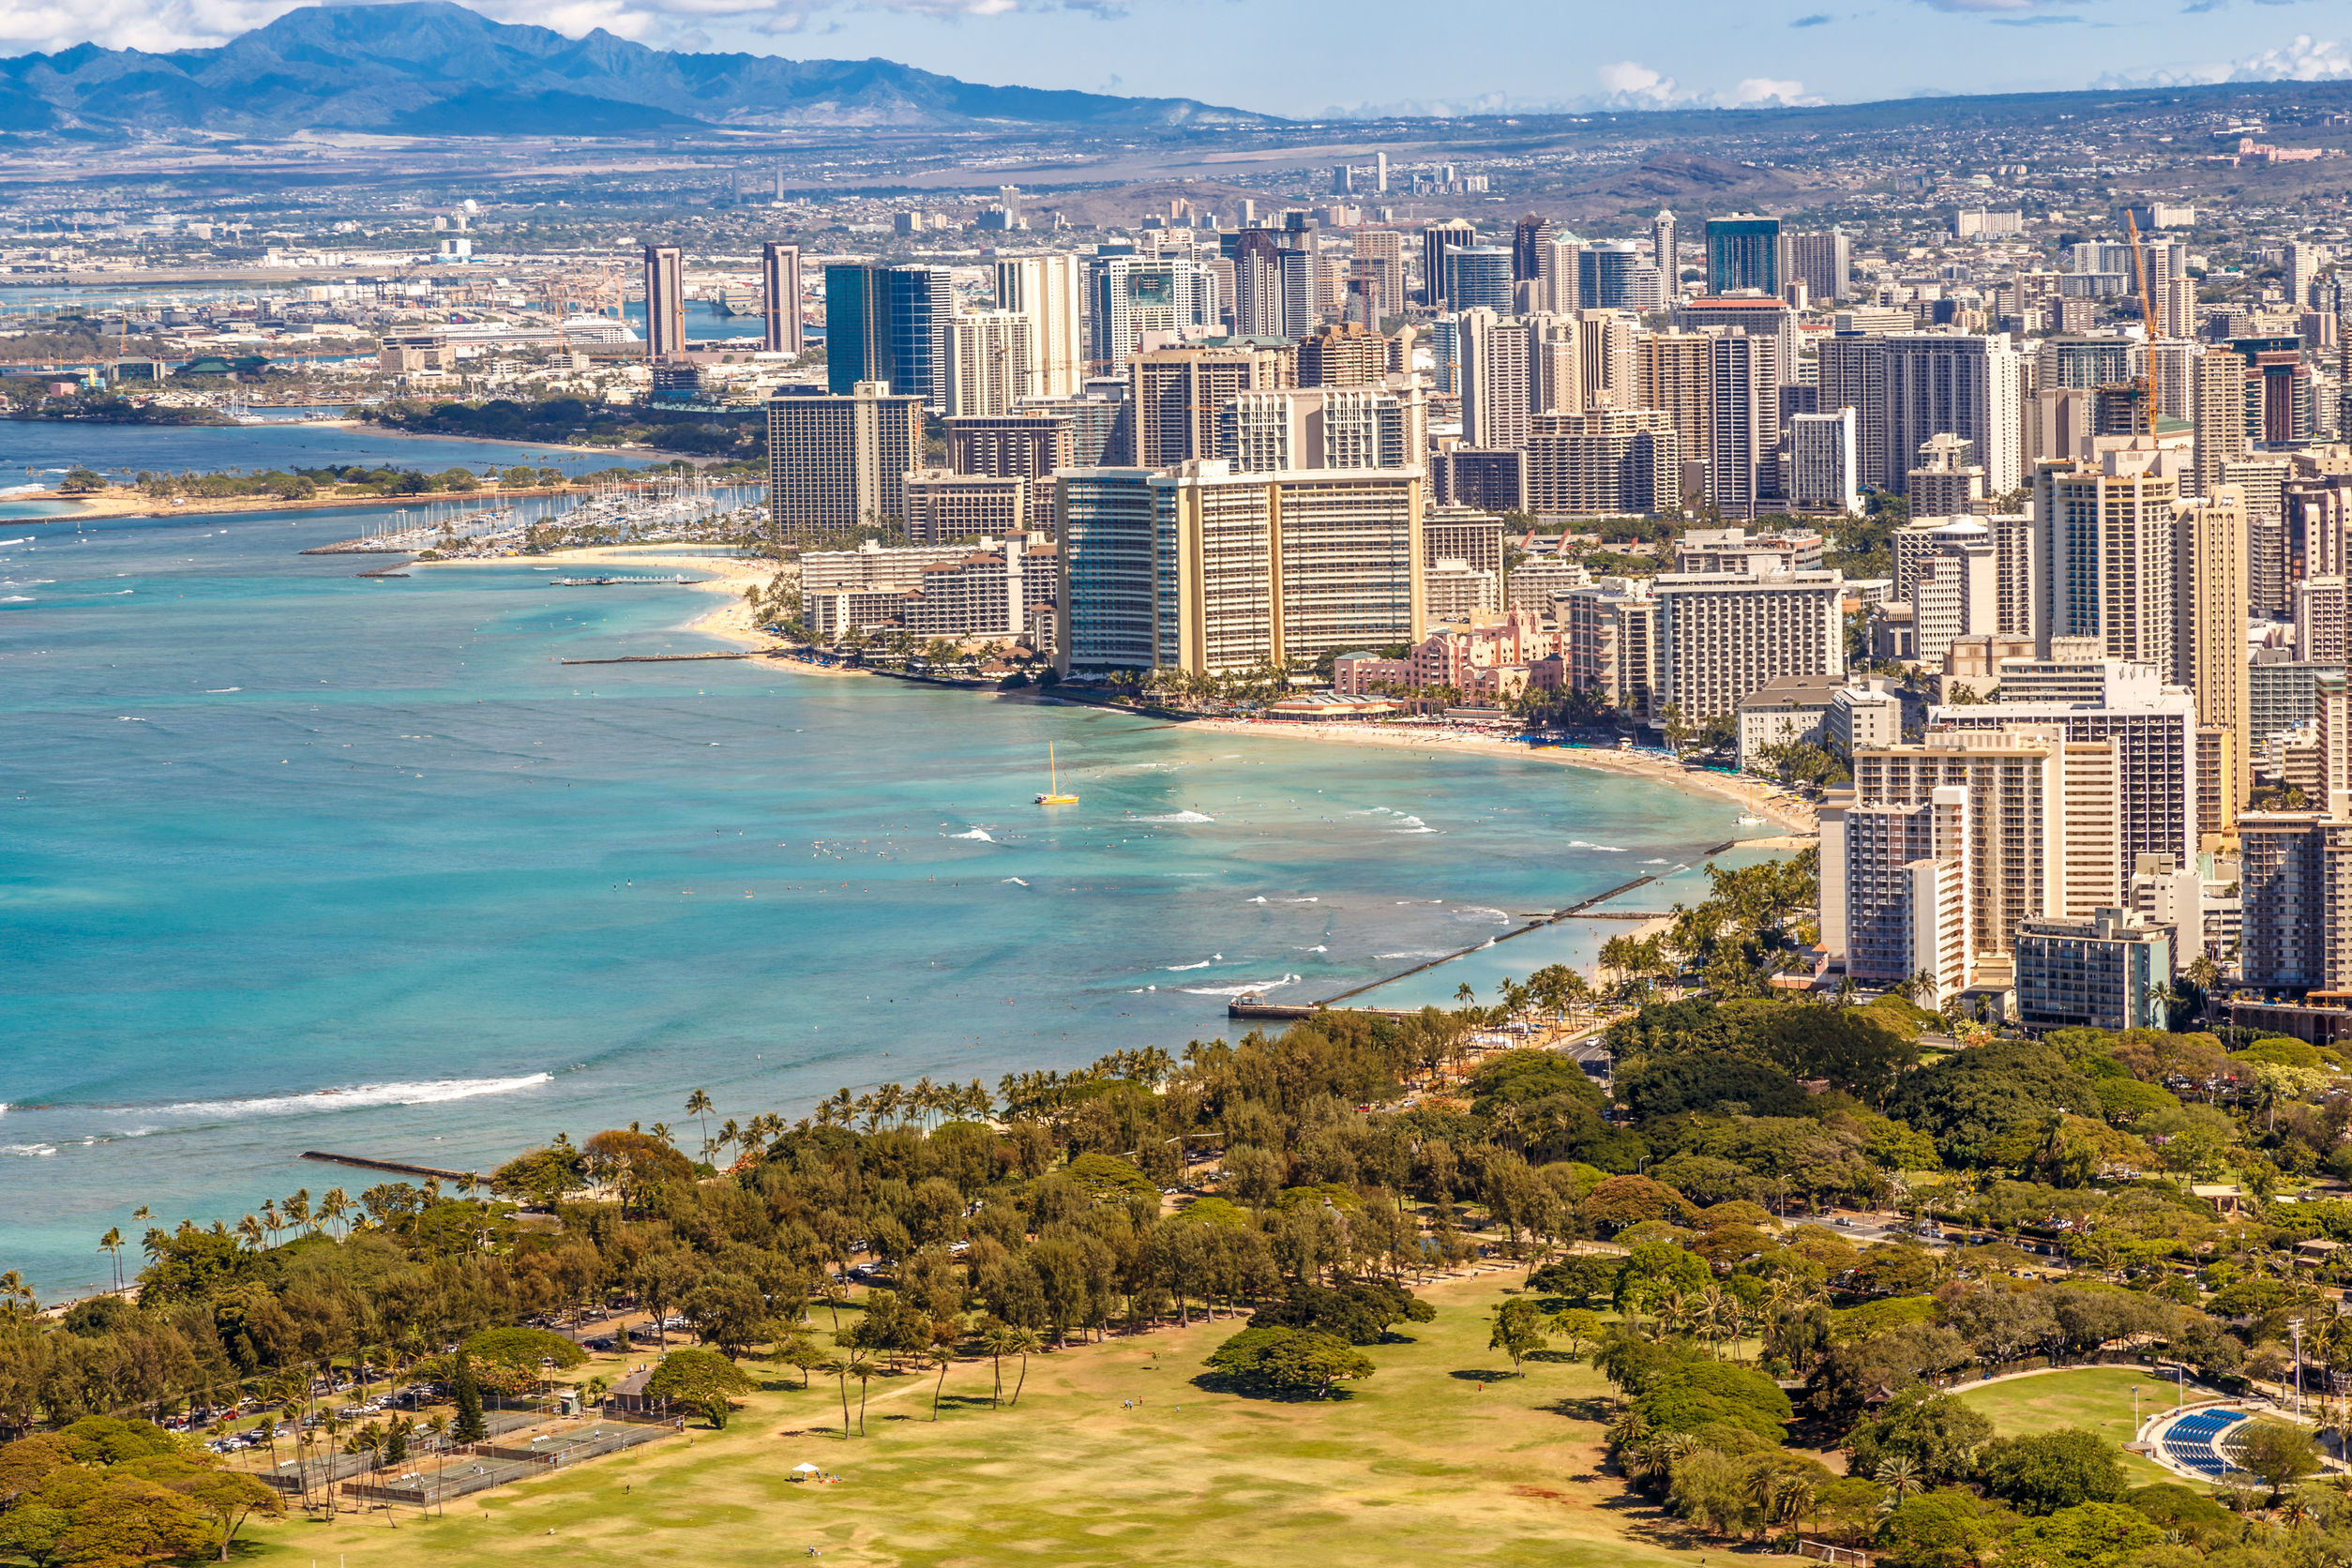 Honolulu Cruise Ship Injury Lawyer